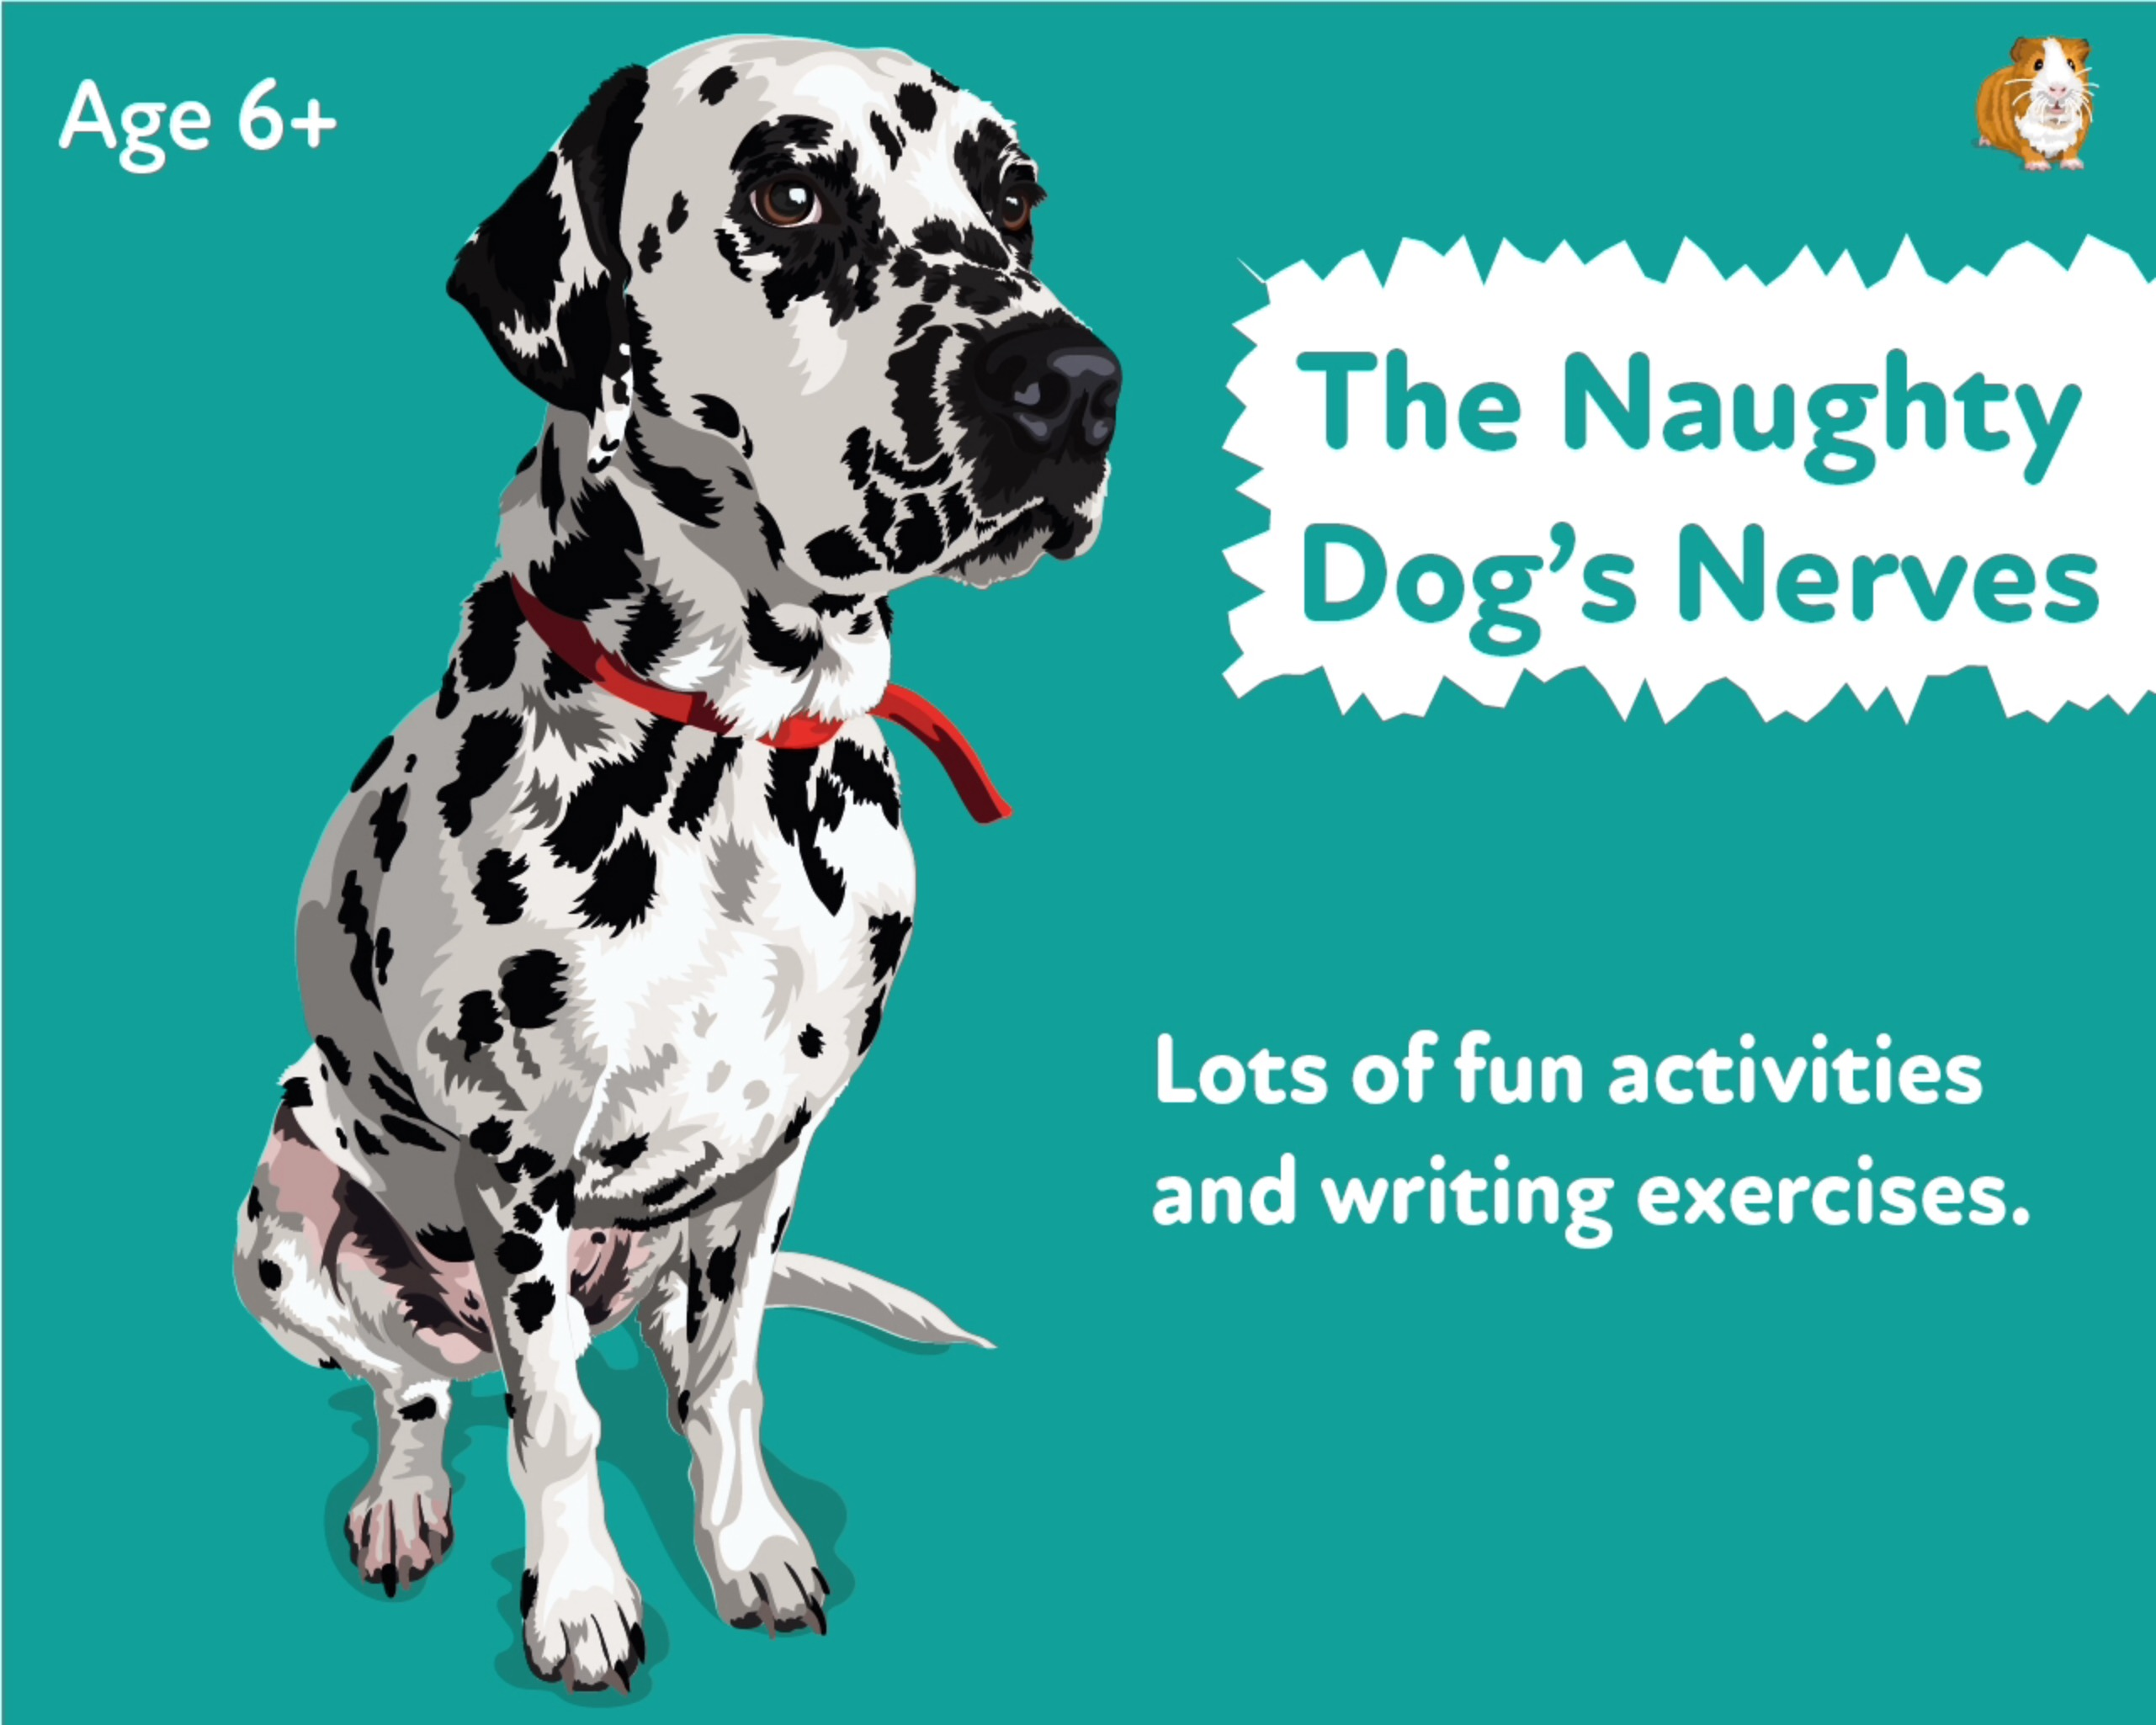 'The Naughty Dog's Nerves' A Fun Writing And Drawing Activity (6 years +)